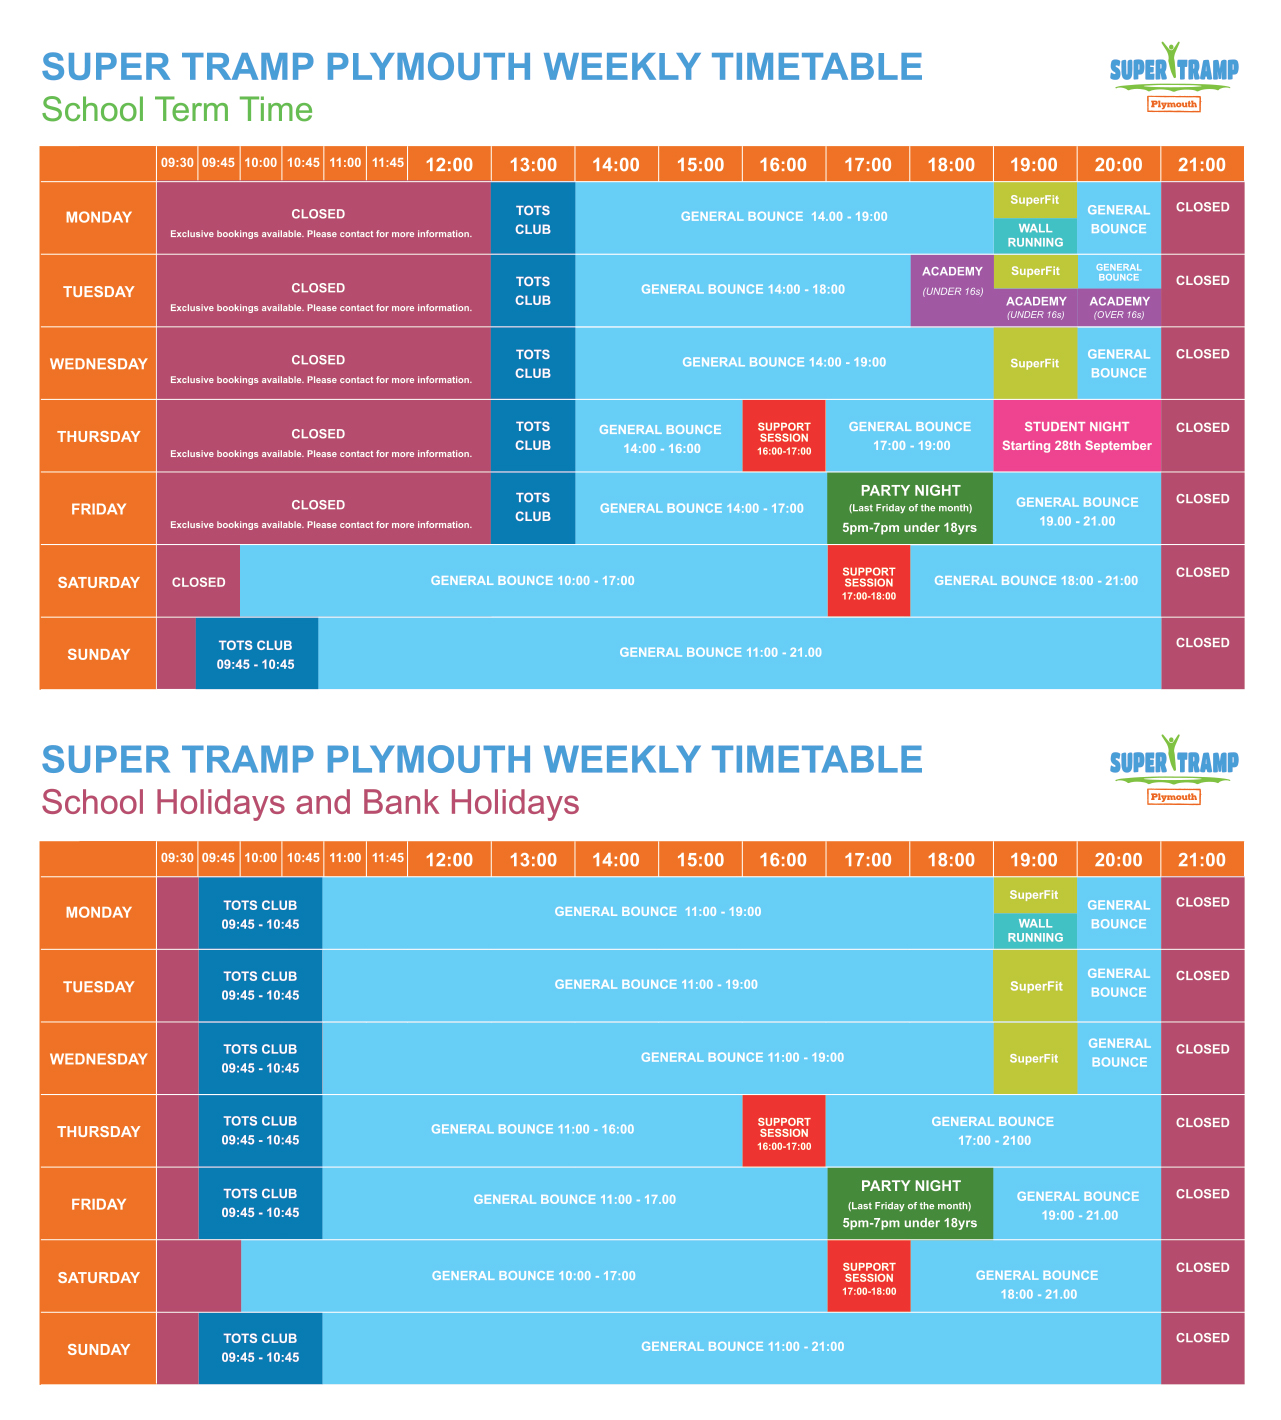 Plymouth_Timetables_V29.jpg